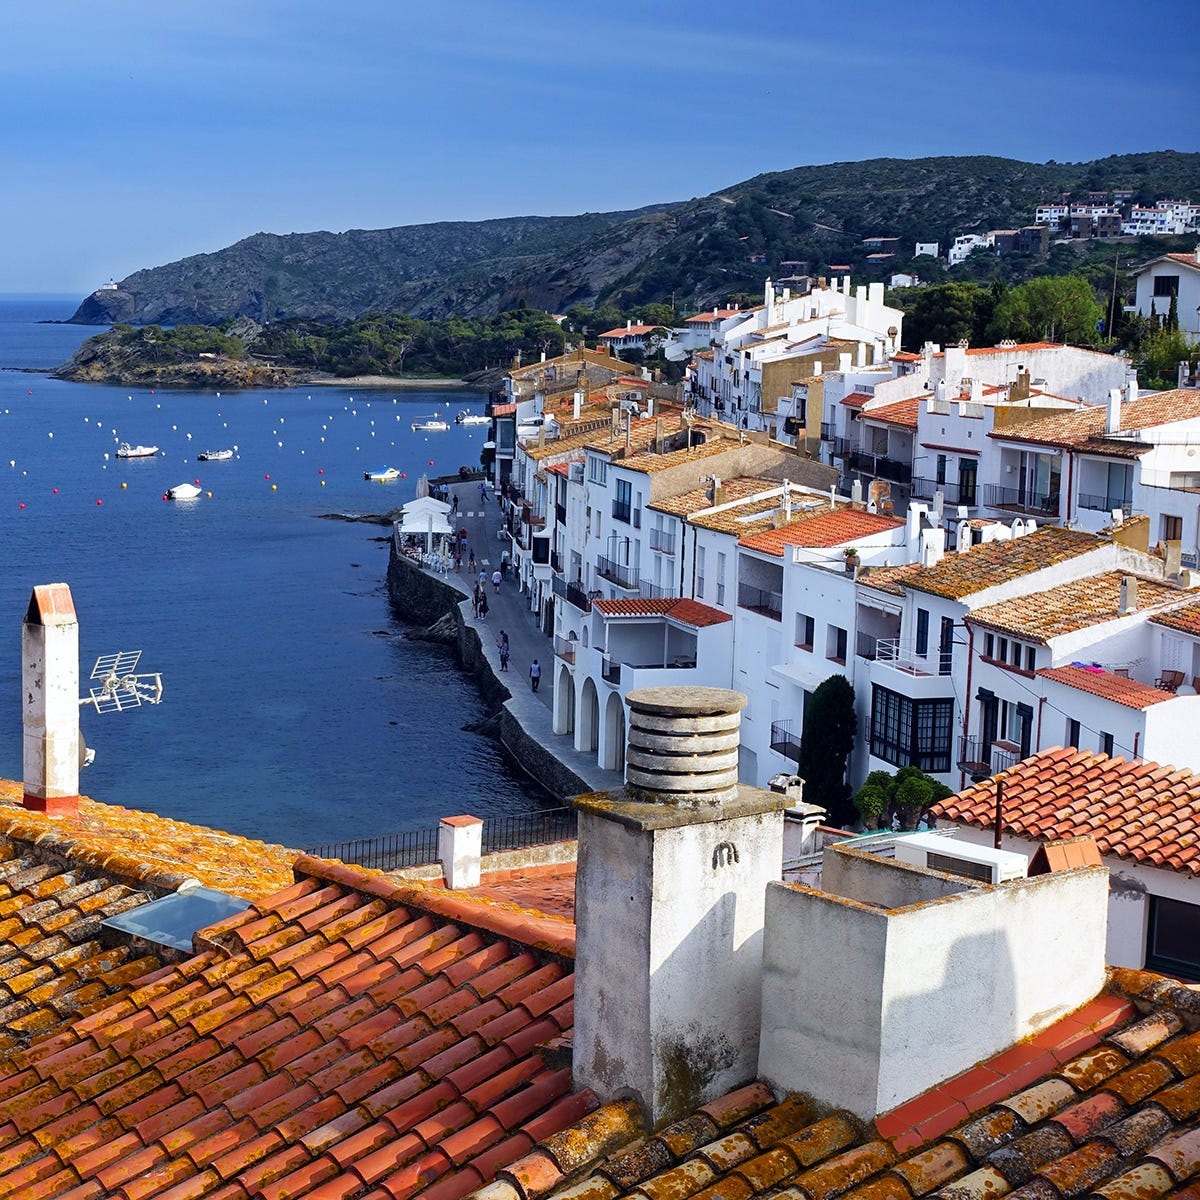 Spain's sunny port town of Cadaqués is an idyllic alternative to the glitzy Mediterranean resorts nearby.